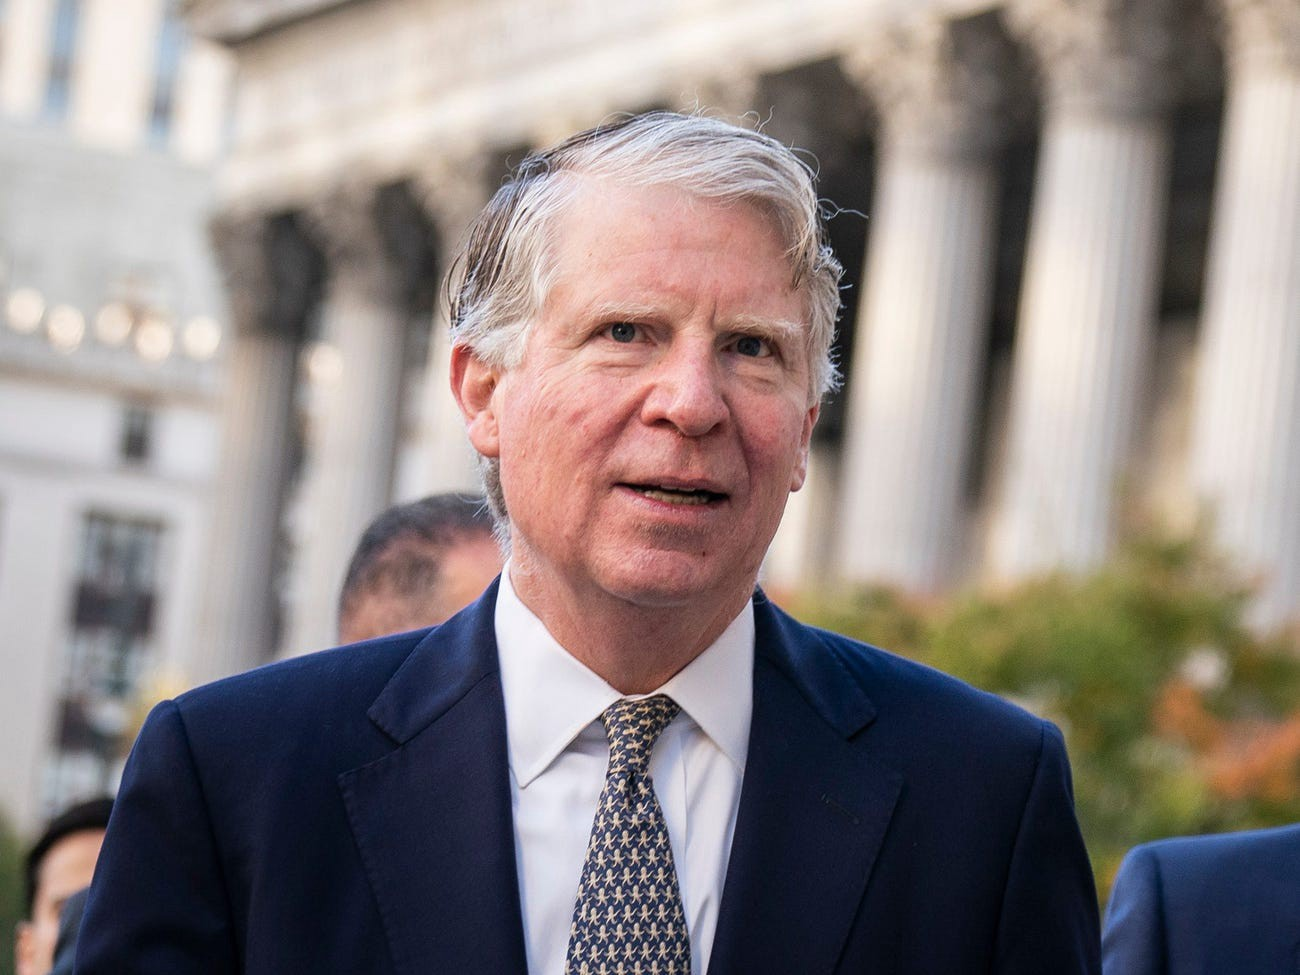 Manhattan District Attorney Cy Vance arrives at federal court for a hearing related to President Donald Trump's financial records on October 23, 2019 in New York City.